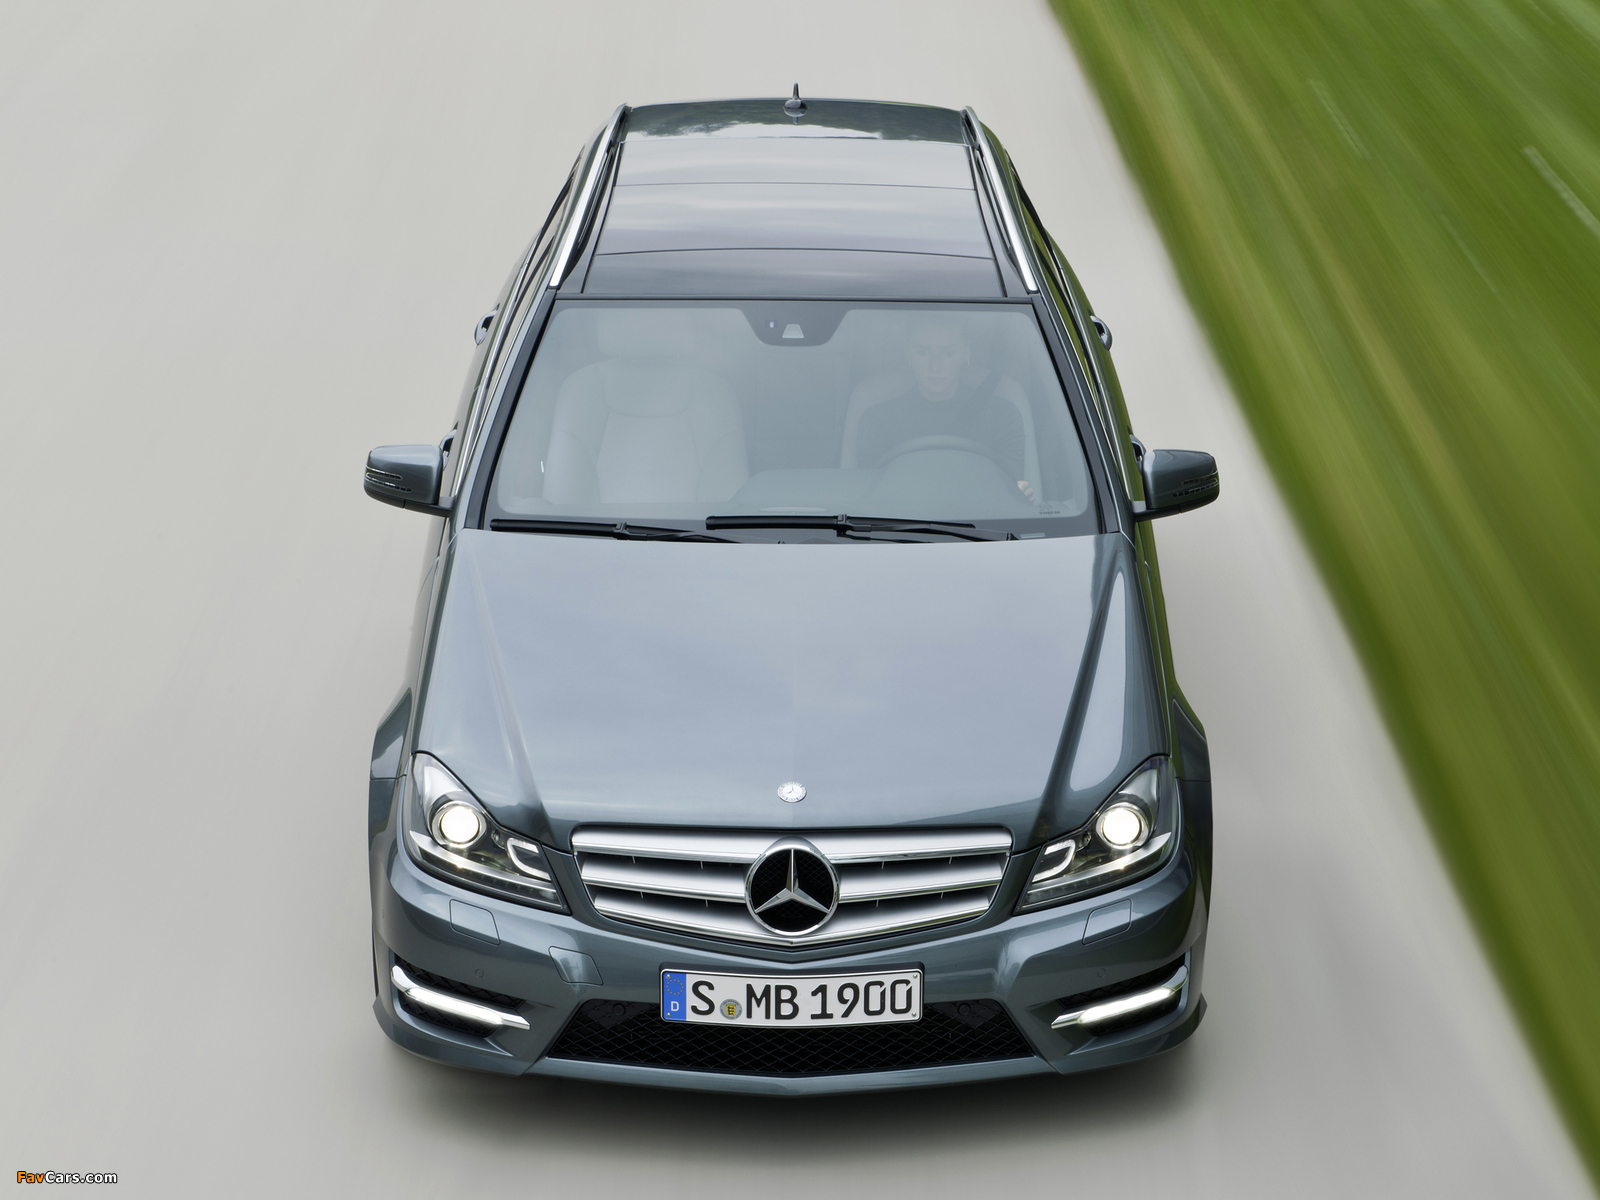 Mercedes-Benz C 350 CDI 4MATIC AMG Sports Package Estate (S204) 2011 wallpapers (1600 x 1200)